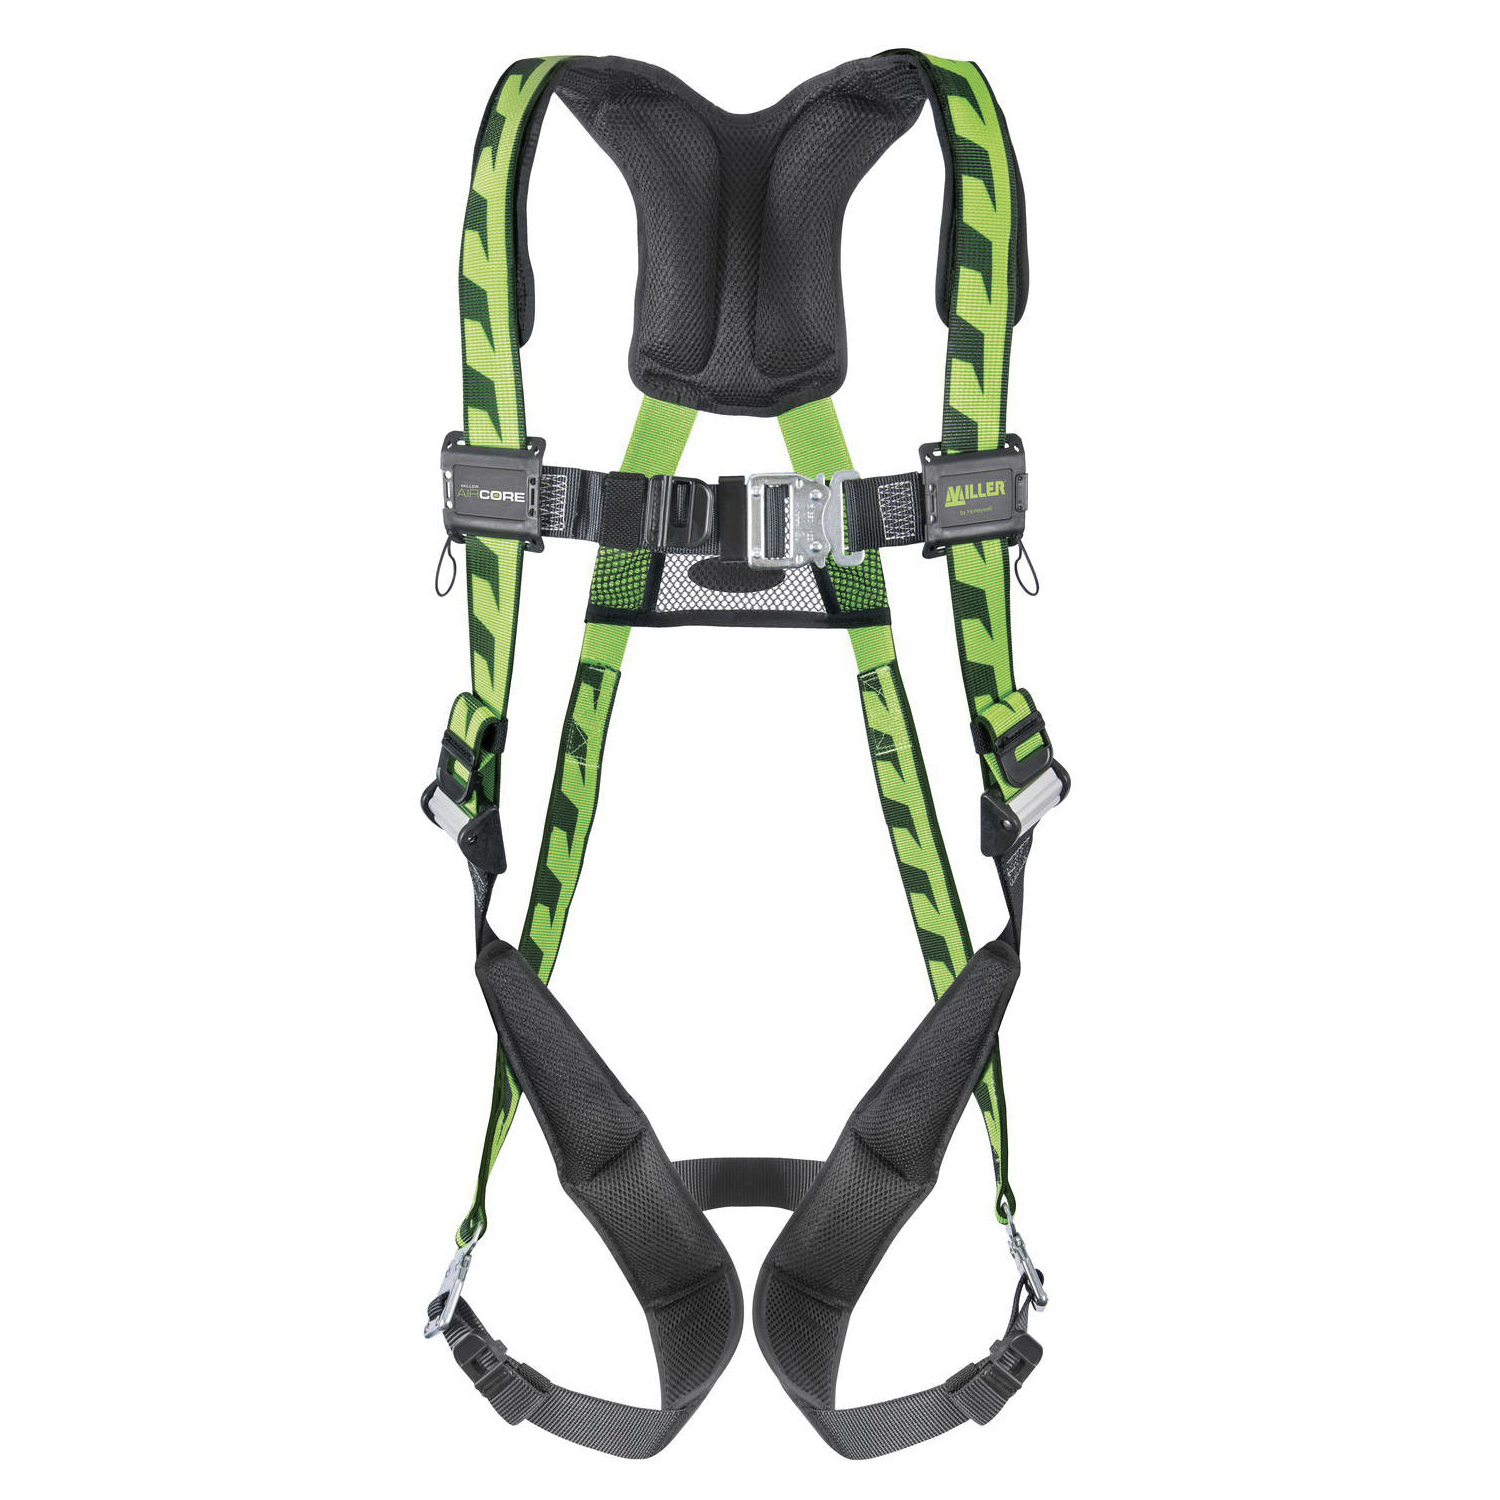 Miller® by Honeywell AirCore™ AC-QC/UGN Harness, Universal, 400 lb Load, Polyester Strap, Quick-Connect Leg Strap Buckle, Quick-Connect Chest Strap Buckle, Carbon Steel Hardware, Green